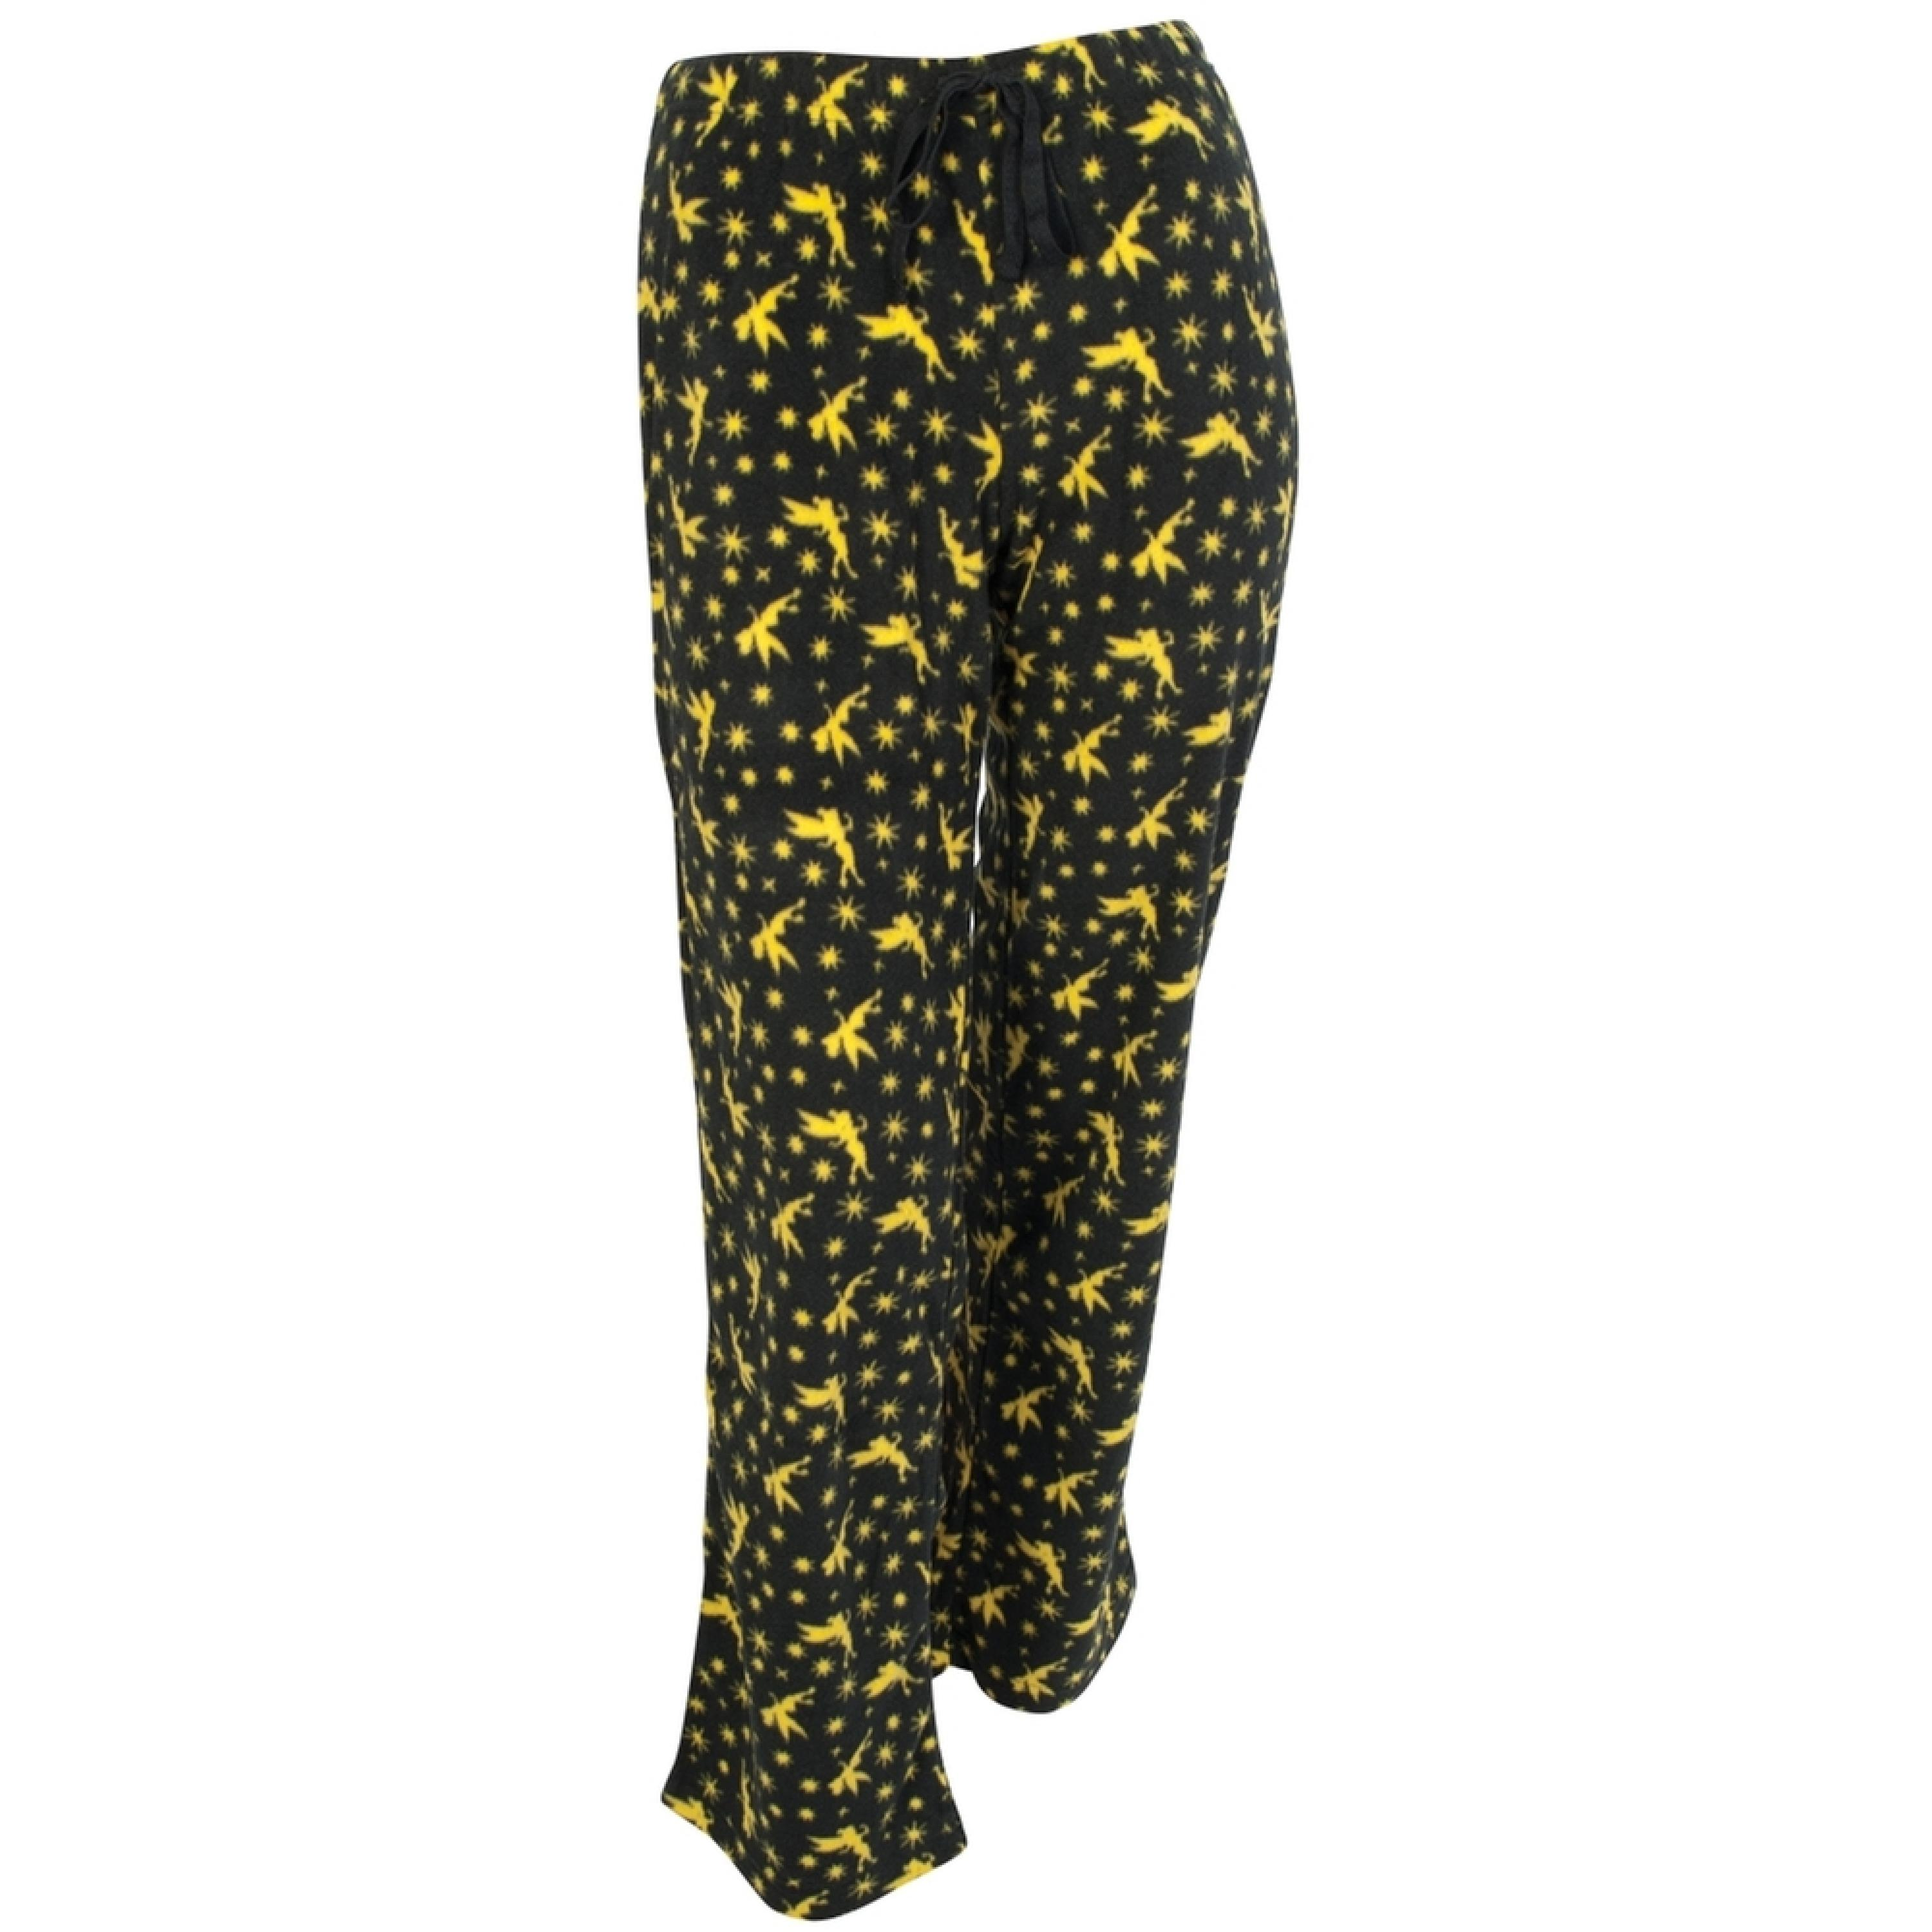 Tinkerbell - Stars & Silhouette Juniors Sleep Pants